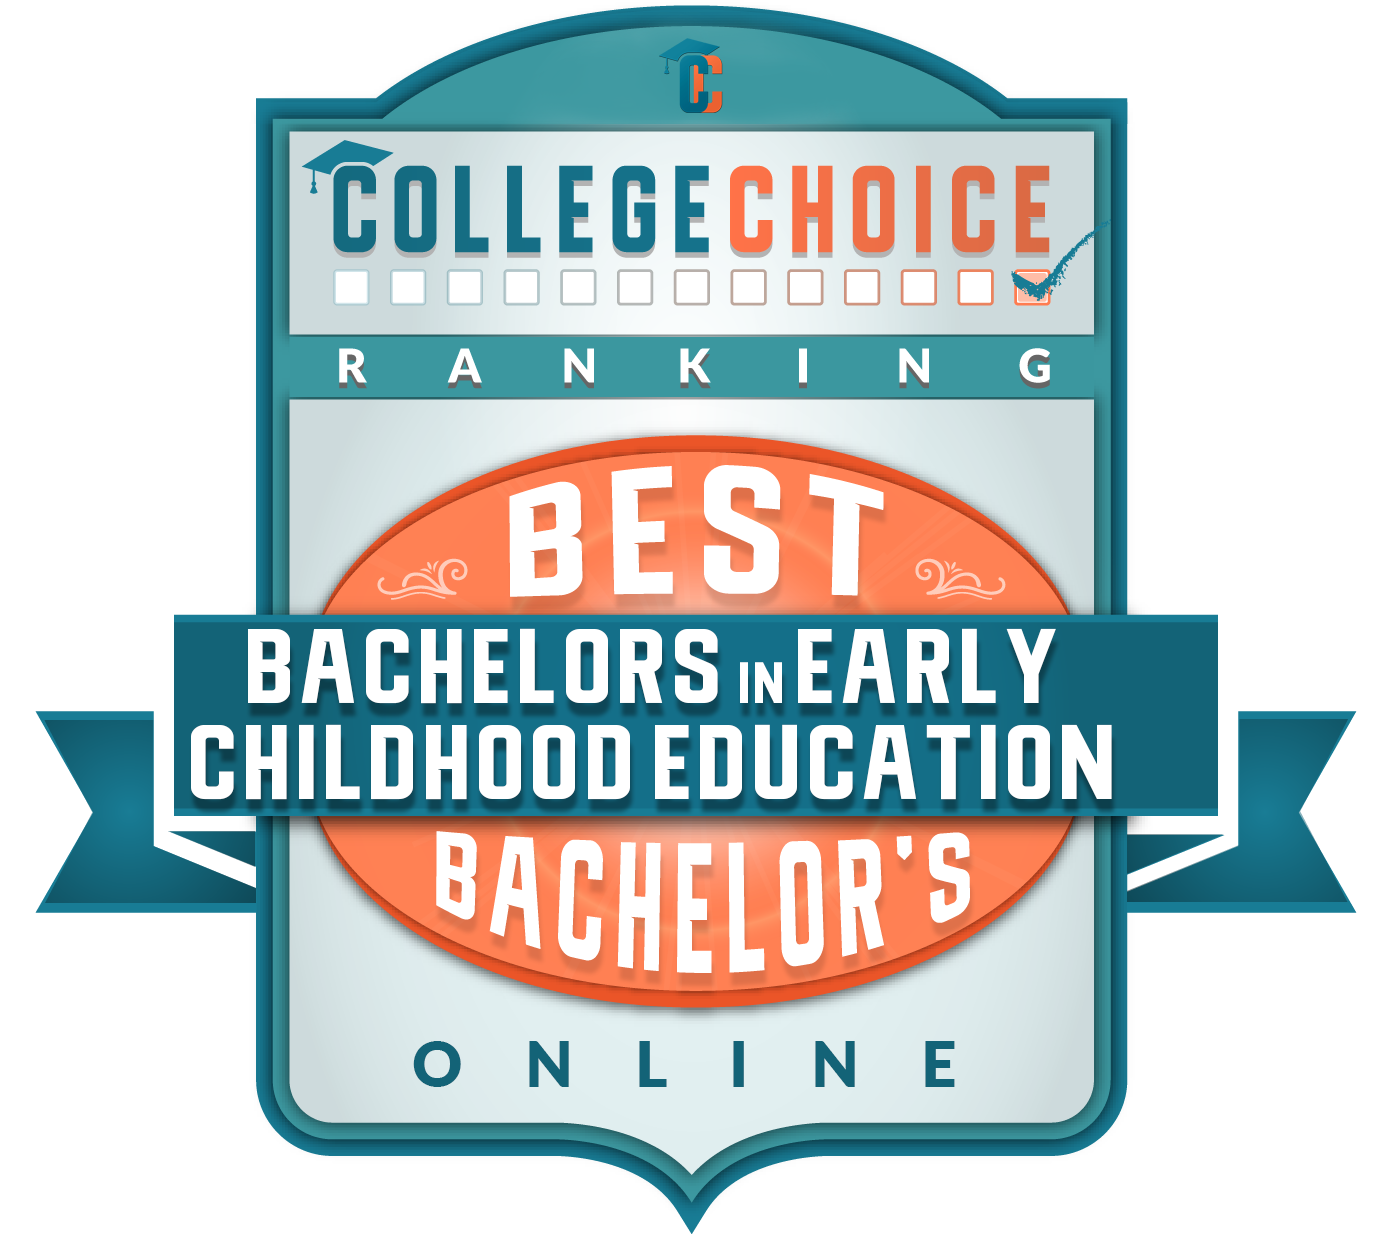 CollegeChoice Best Bachelors in Early Childhood Education Badge